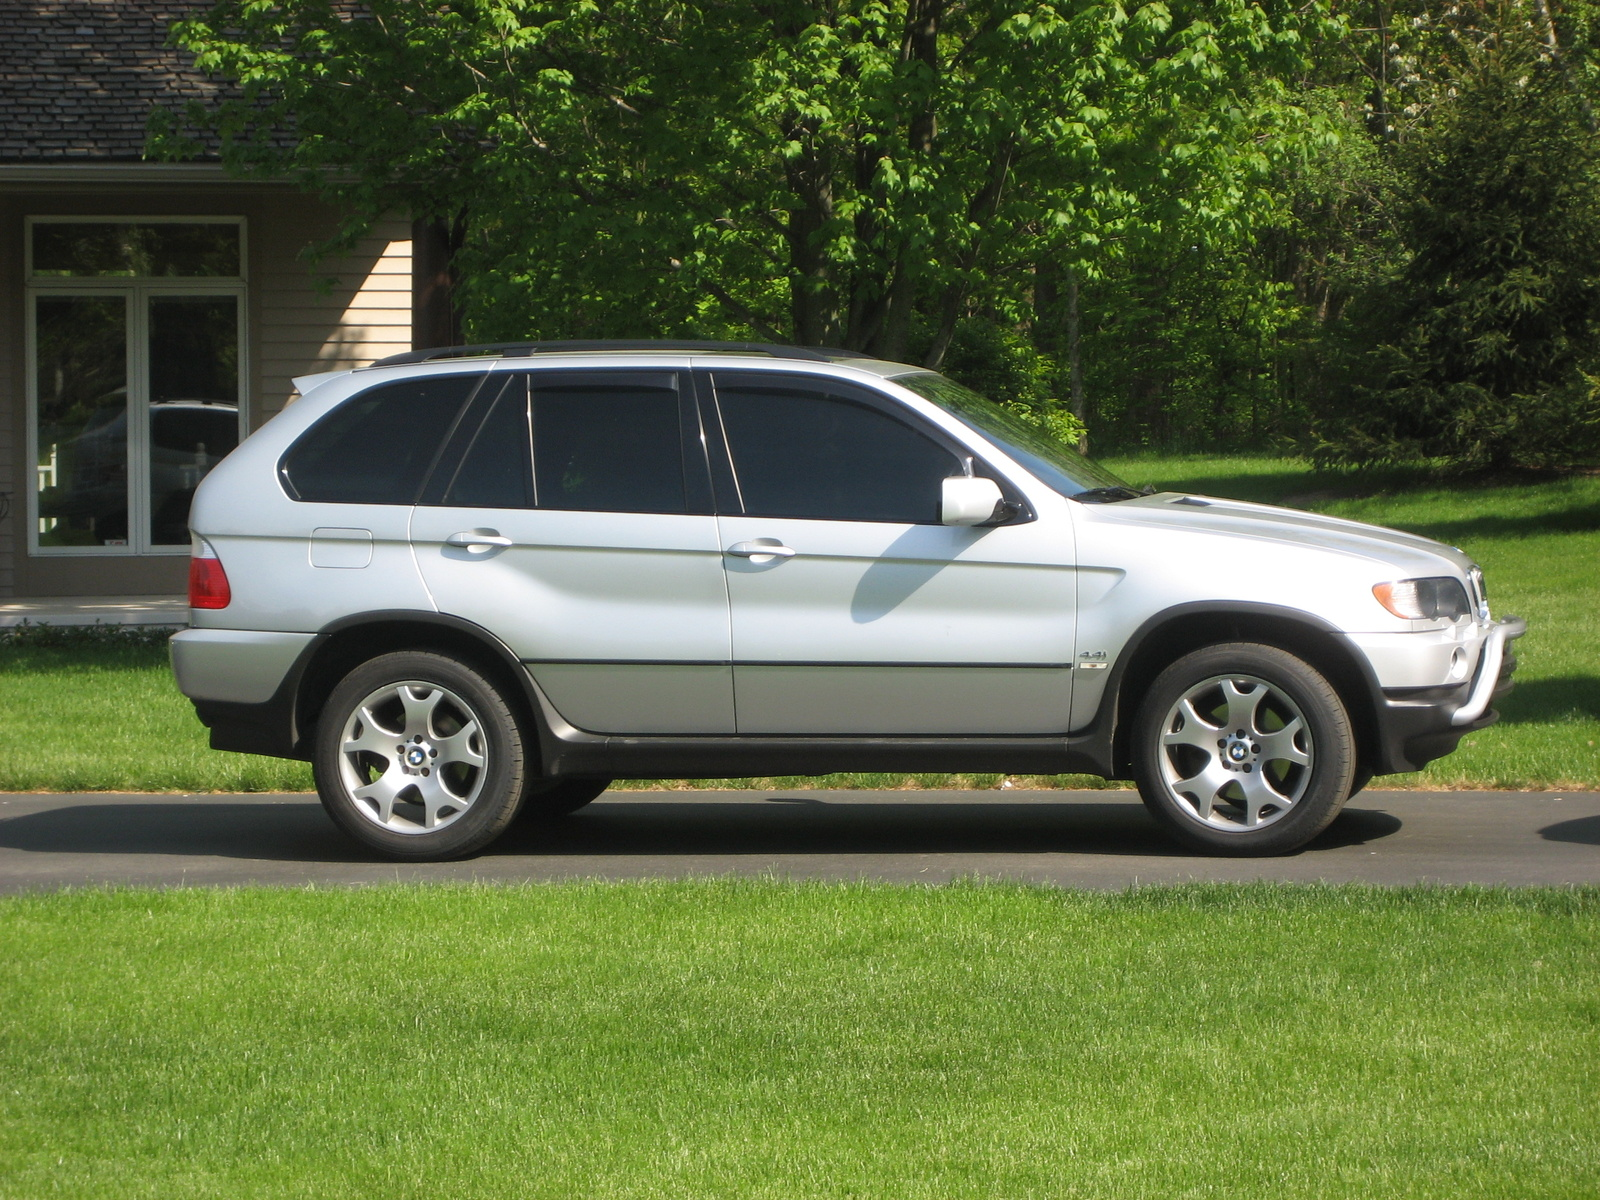 Bmw X5 2001 Review Amazing Pictures And Images Look At